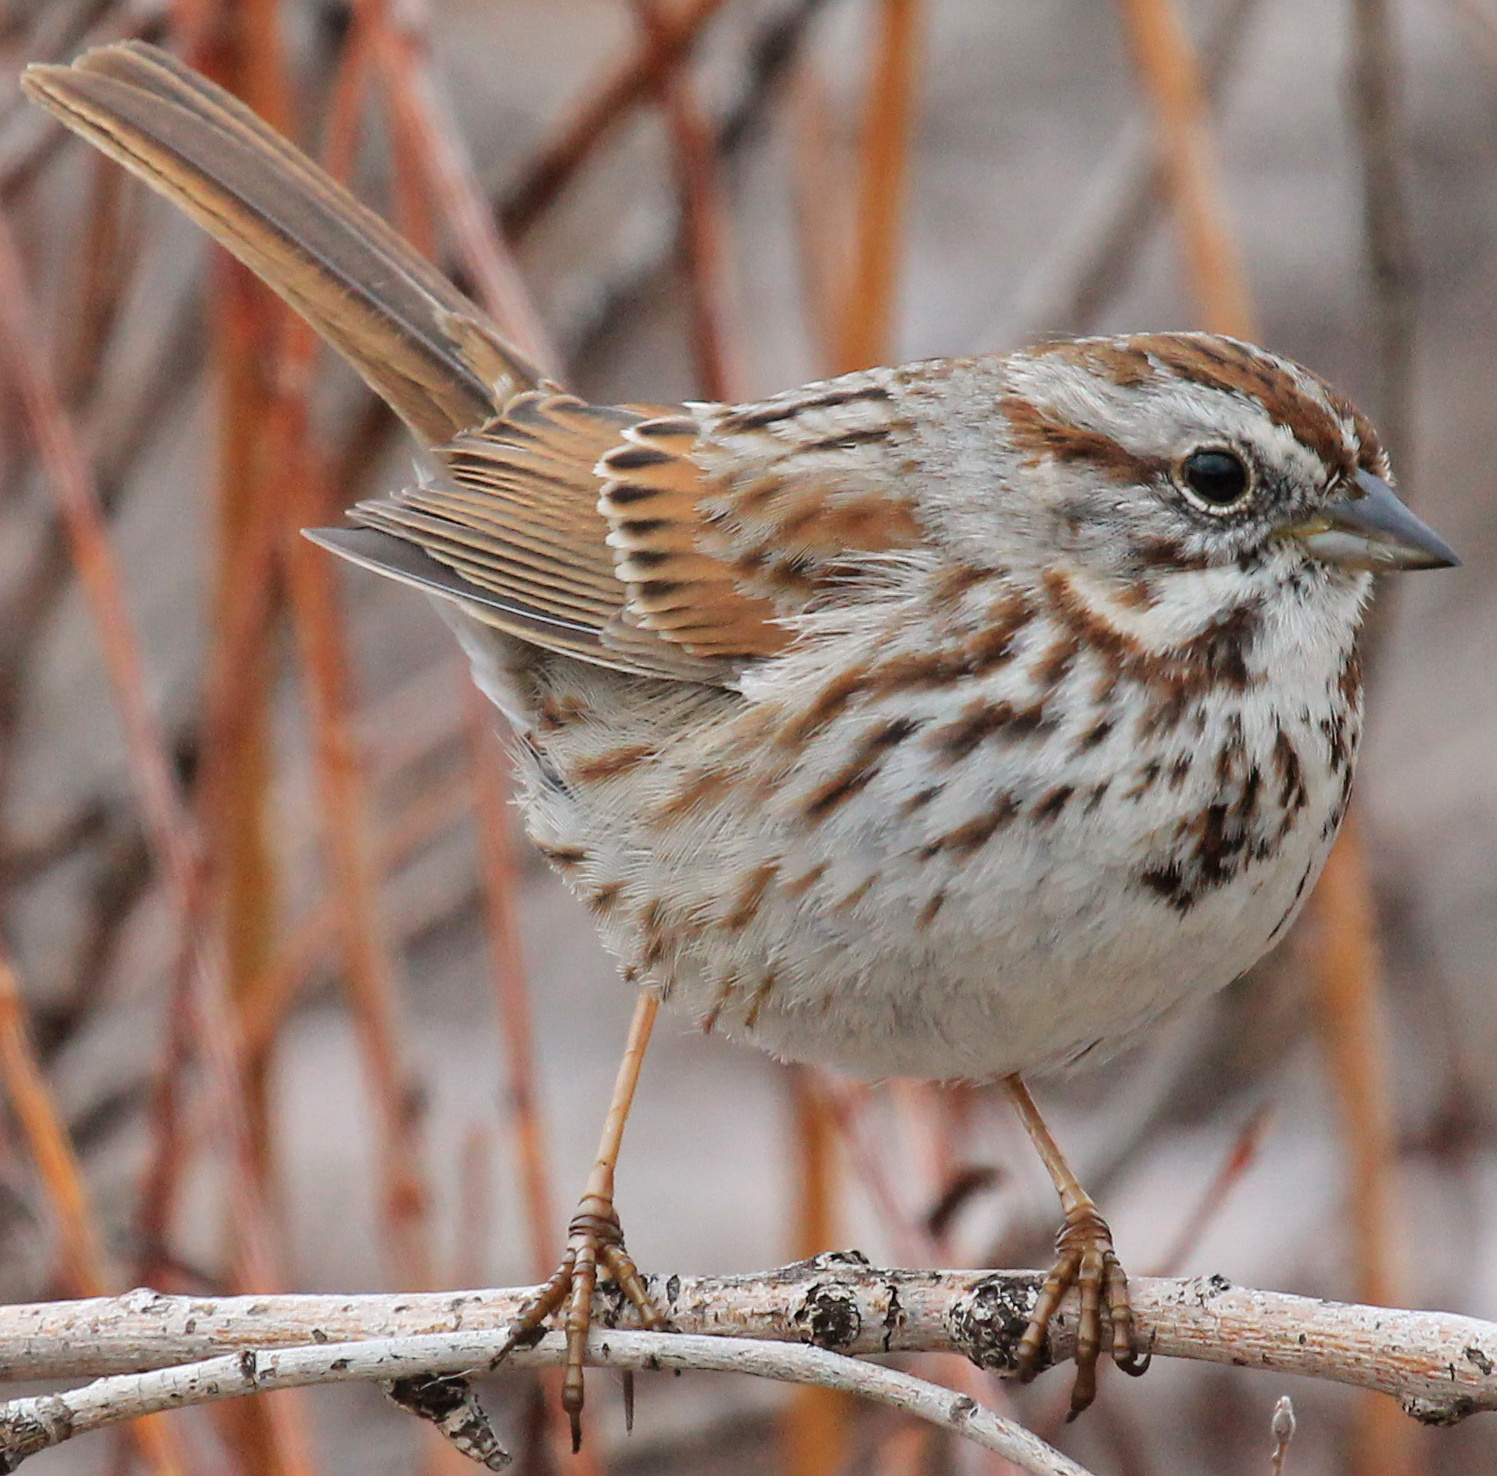 song sparrow on branch Wallace Keck May 2011